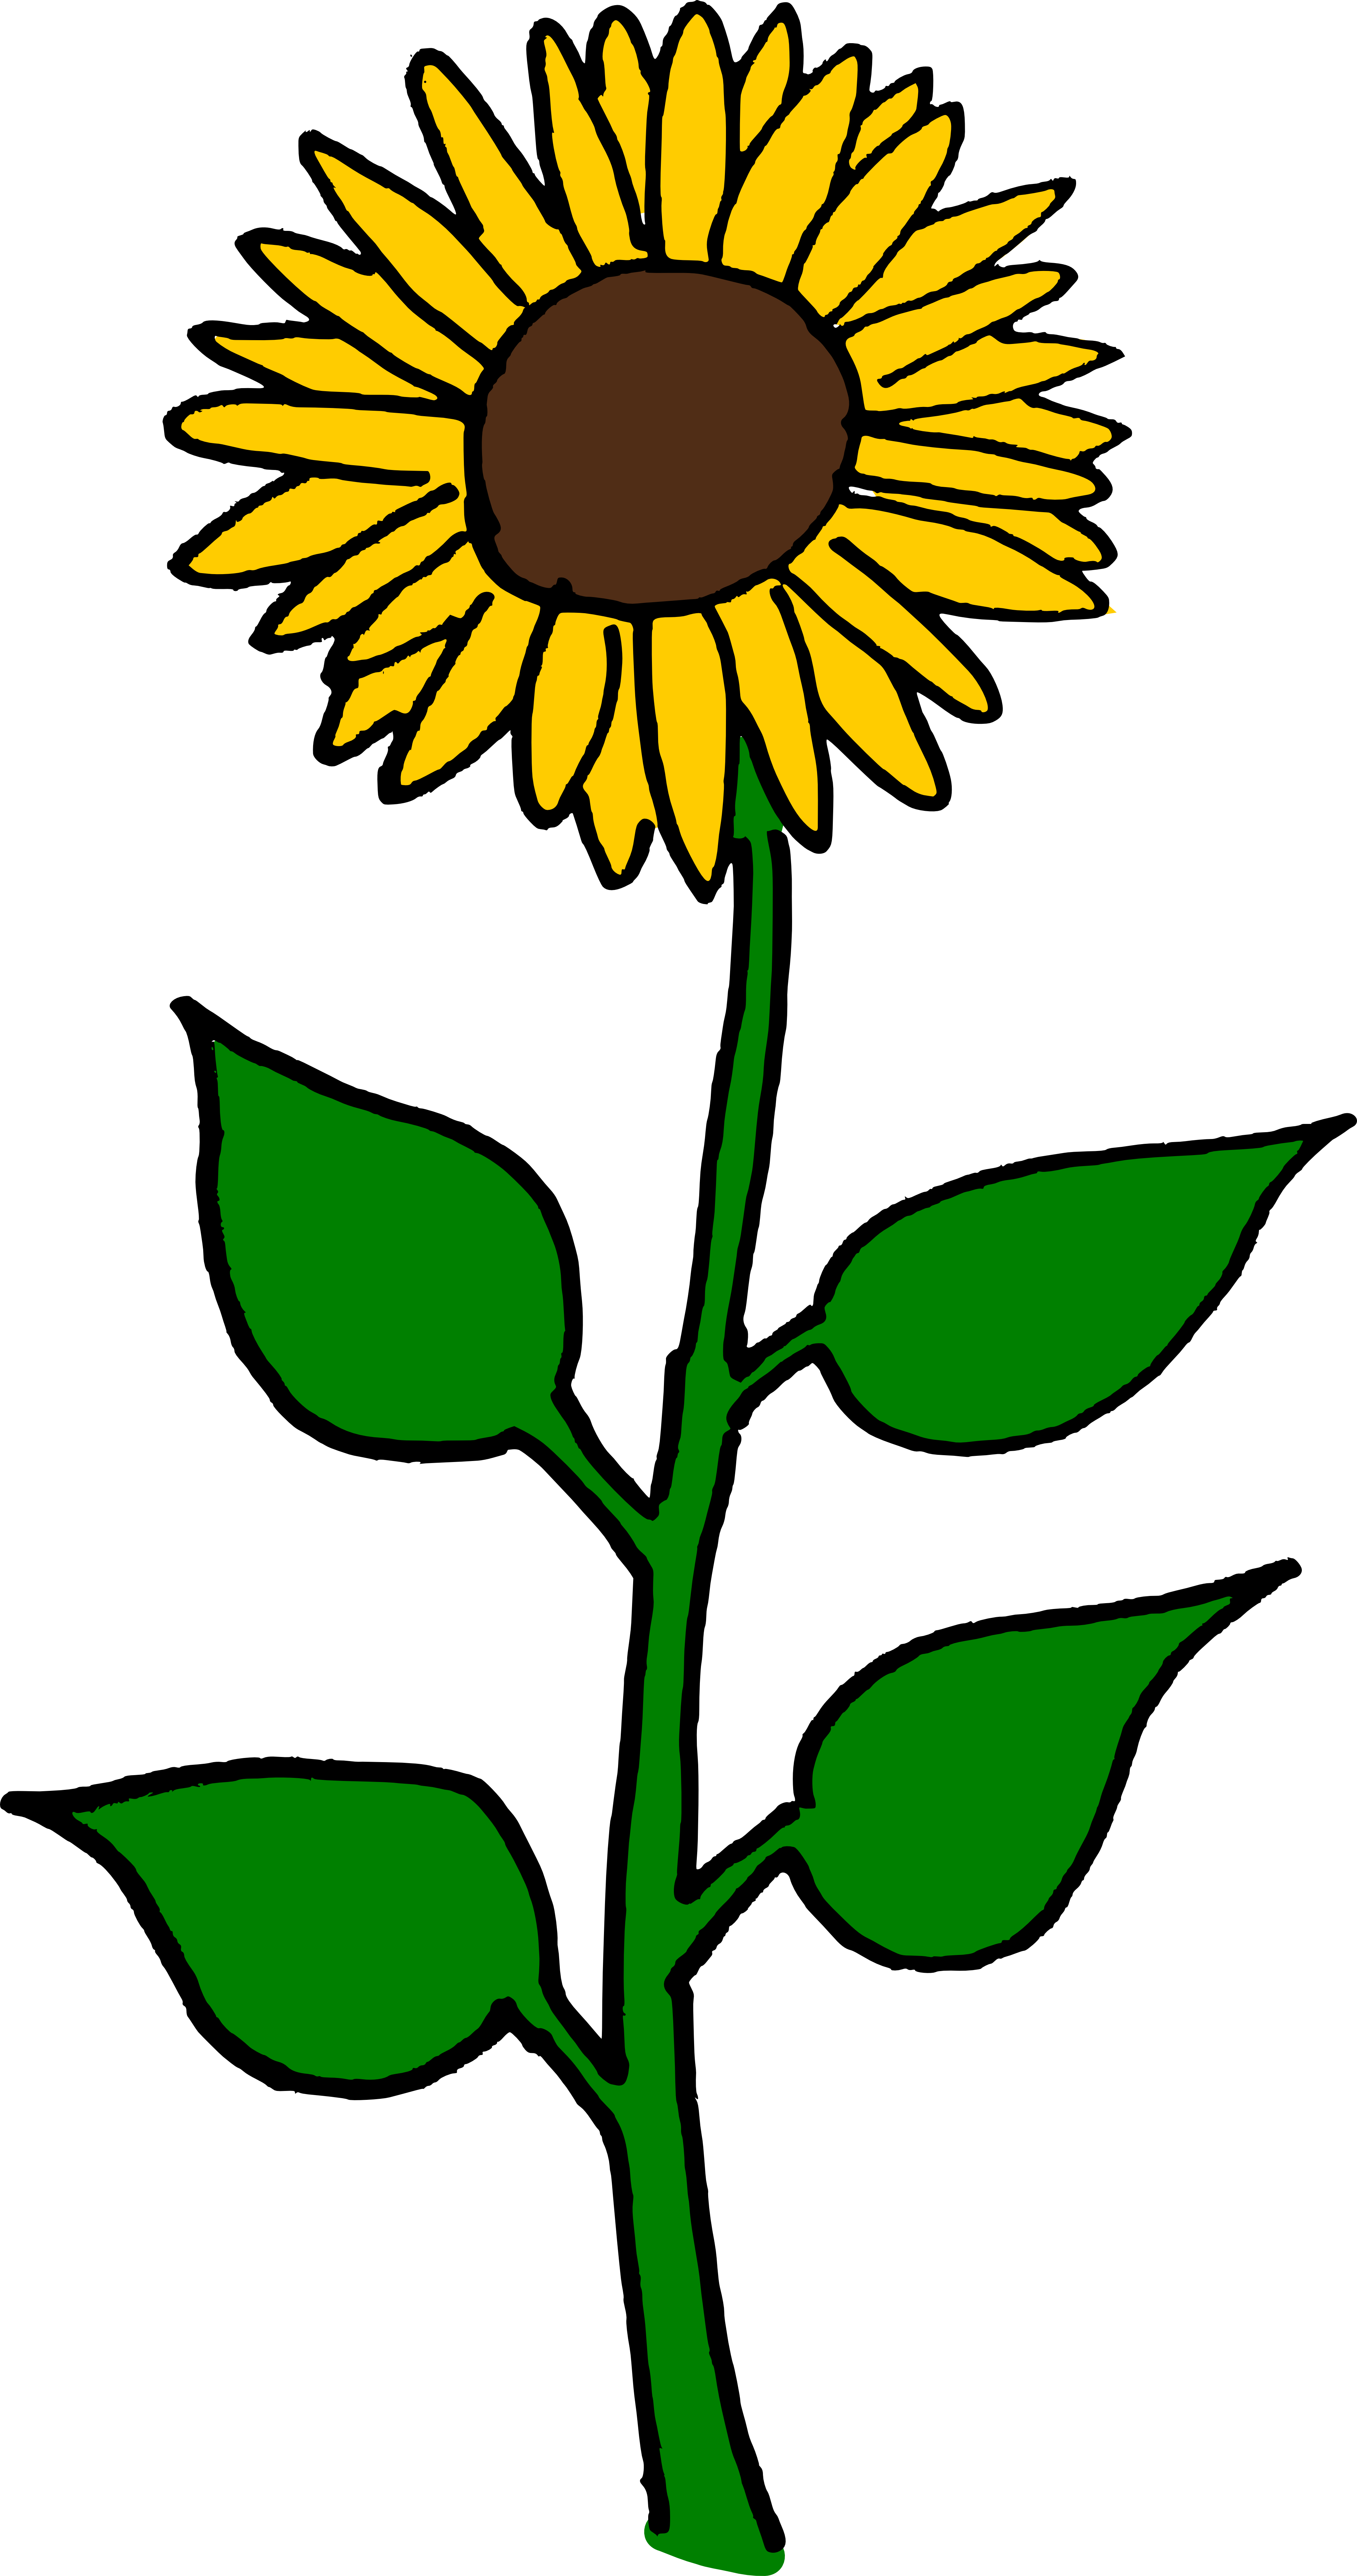 Flower seed clipart image free download Common sunflower Sunflower seed Helianthus giganteus Clip art ... image free download